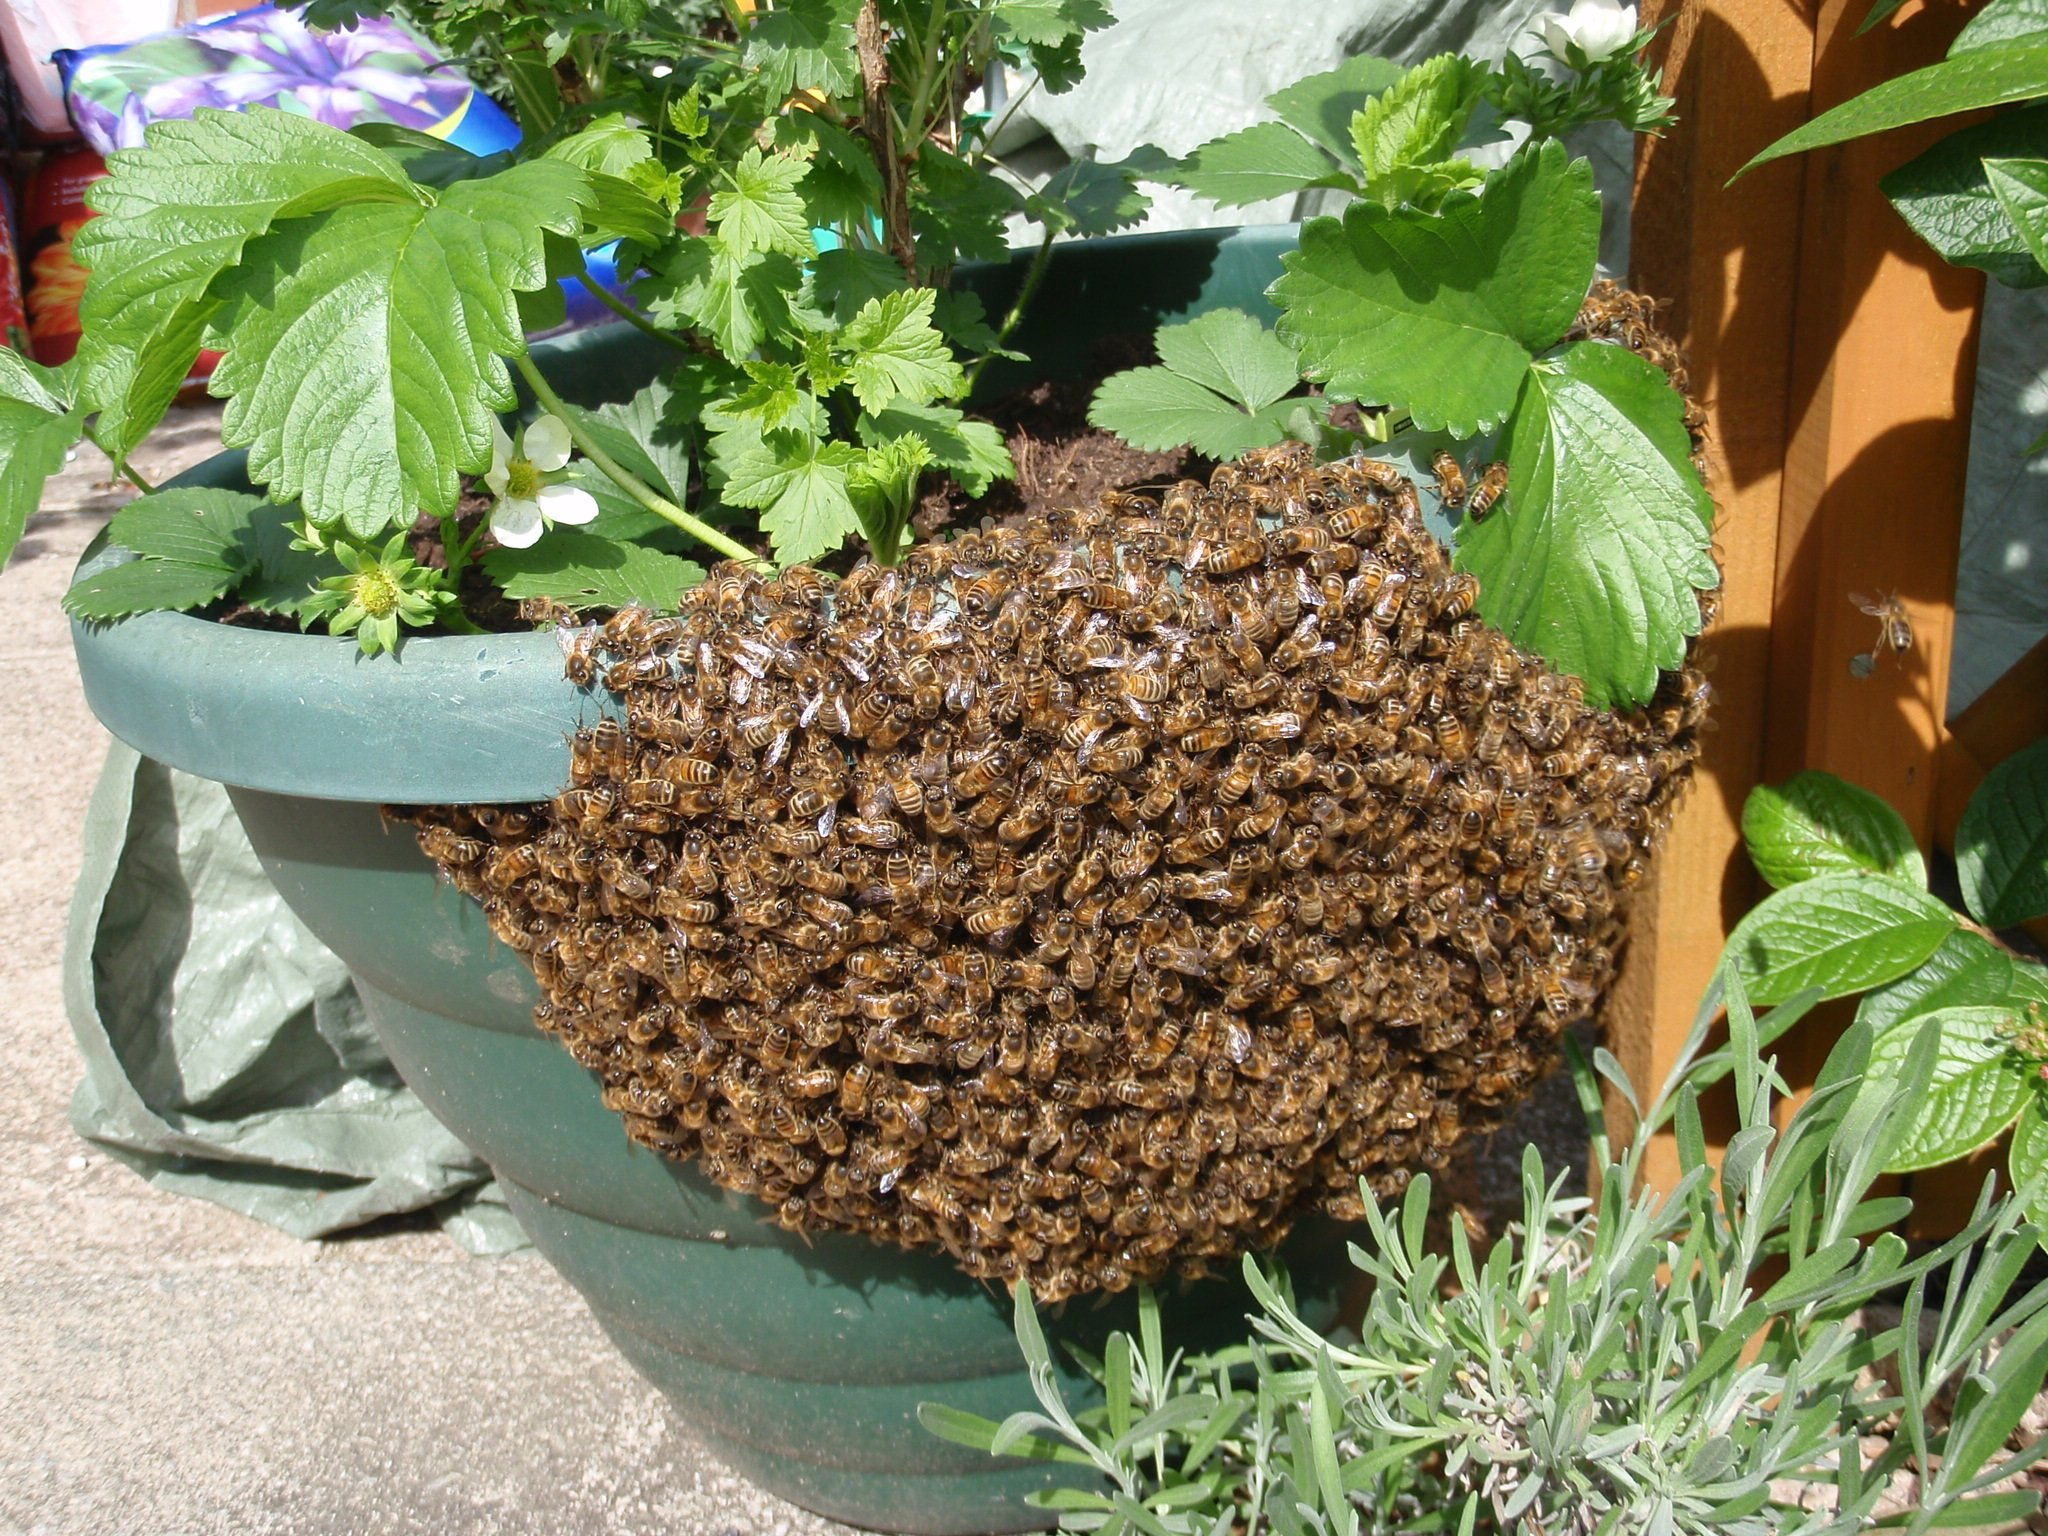 bees near the pot